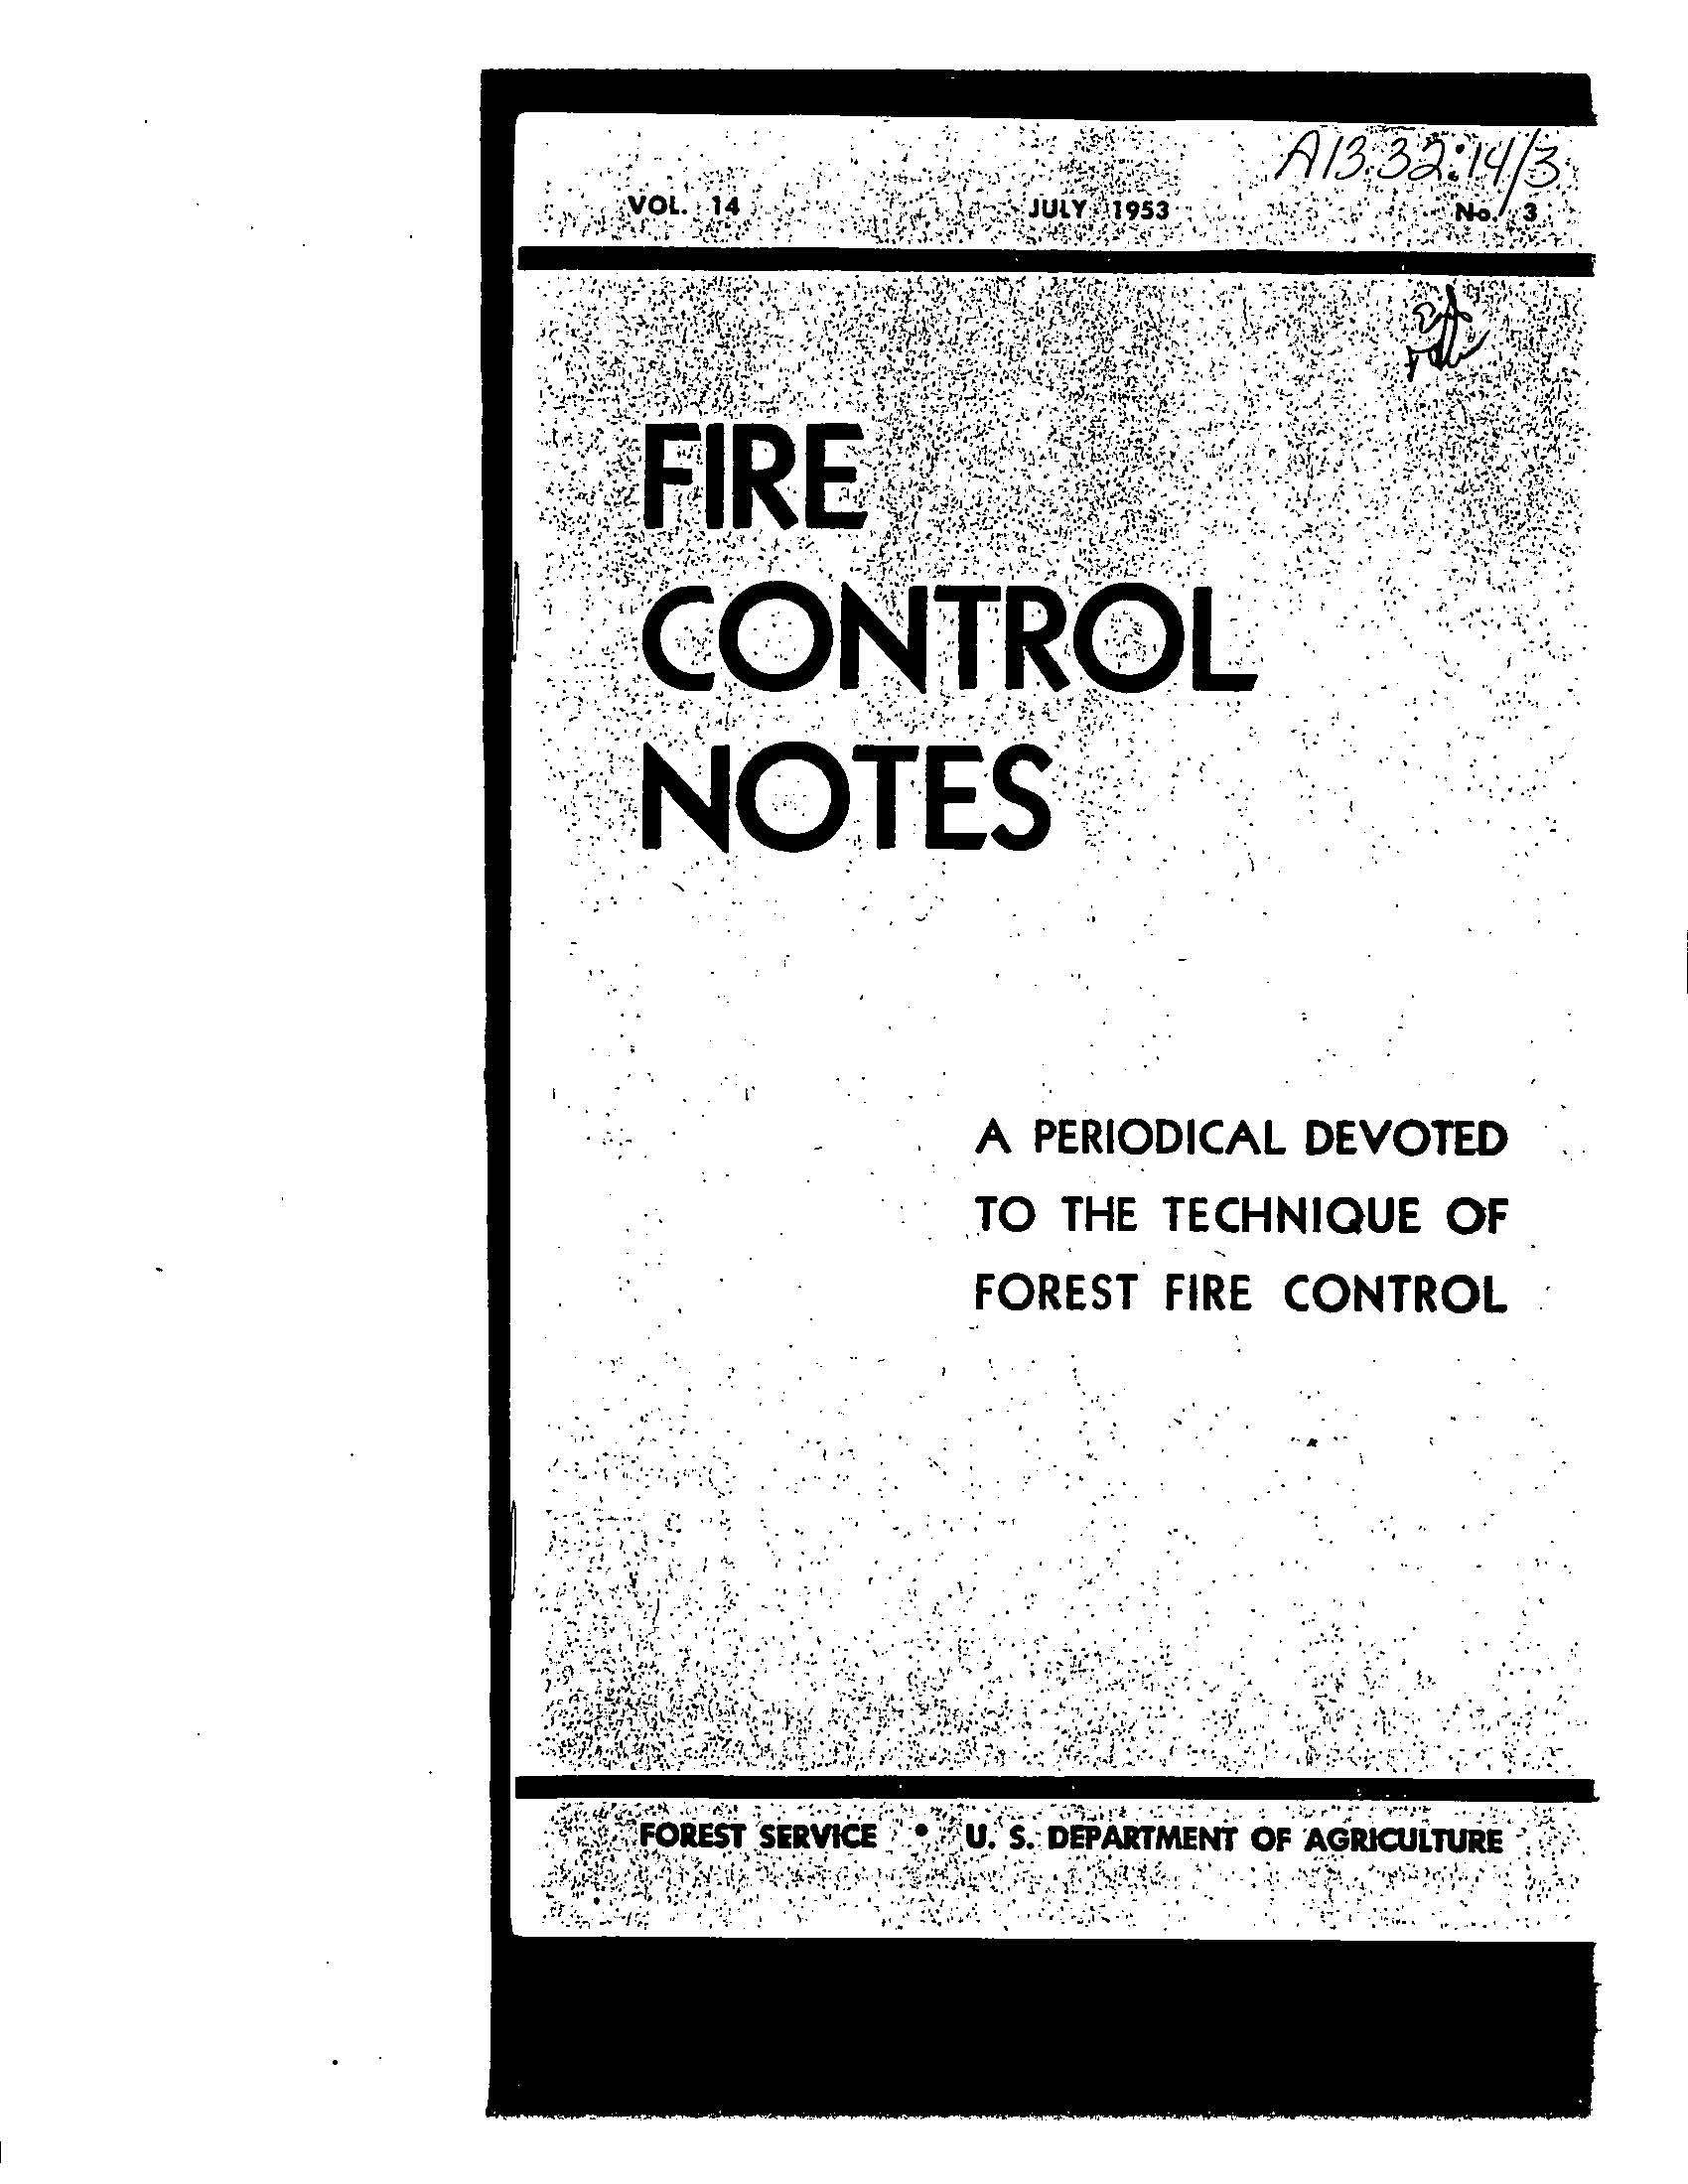 Cover of Fire Management Today Volume 14, Issue 03